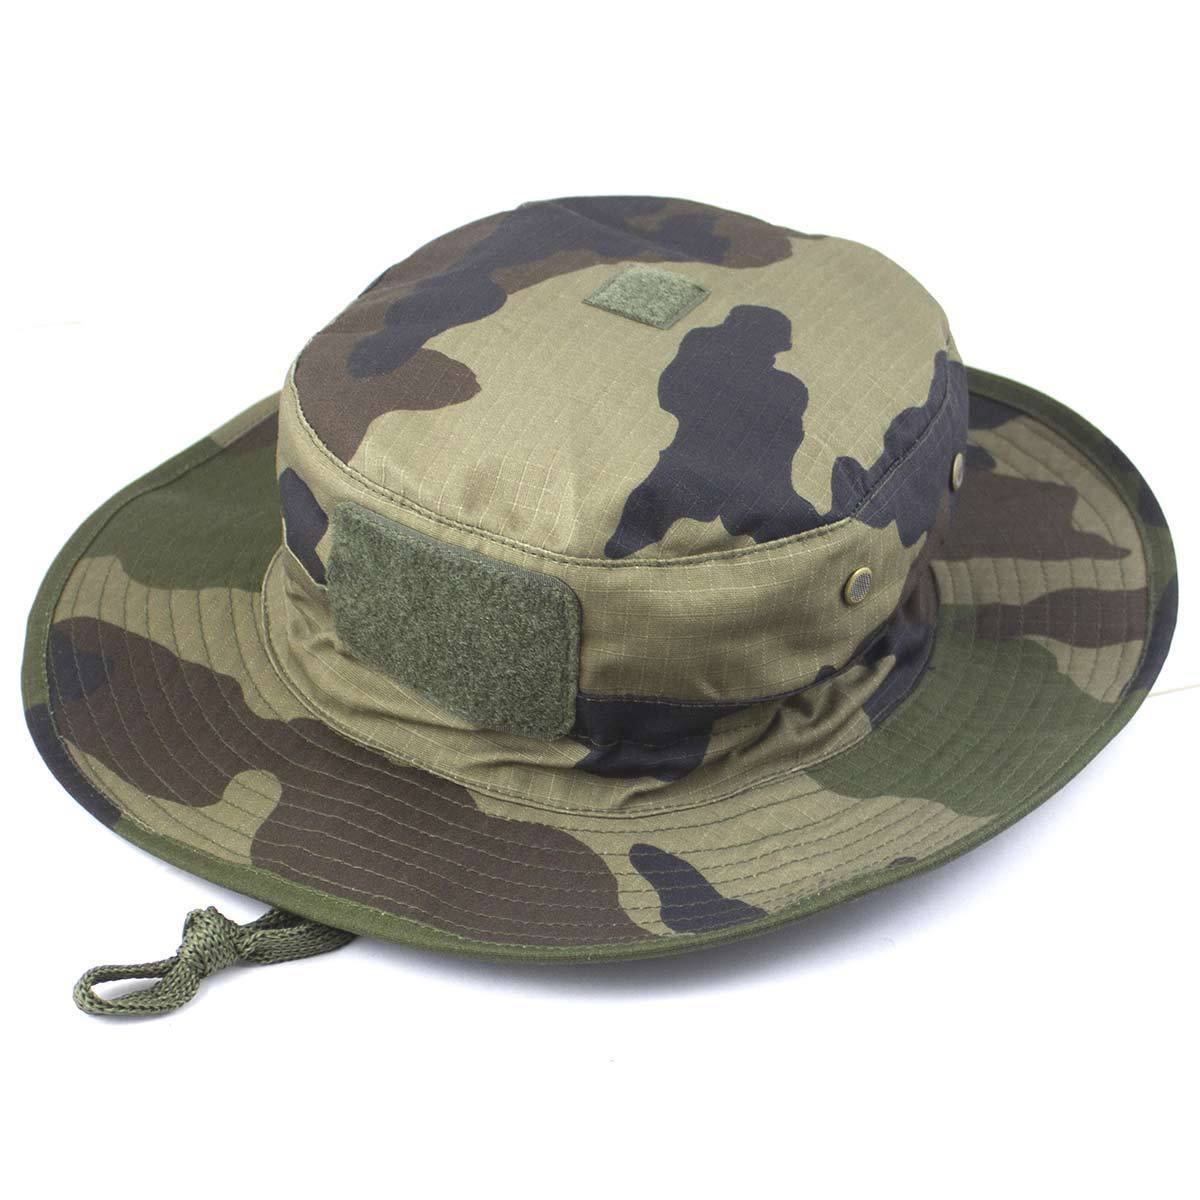 Bulldog Tactical Boonie Hat CCE | Bulldog Tactical Gear